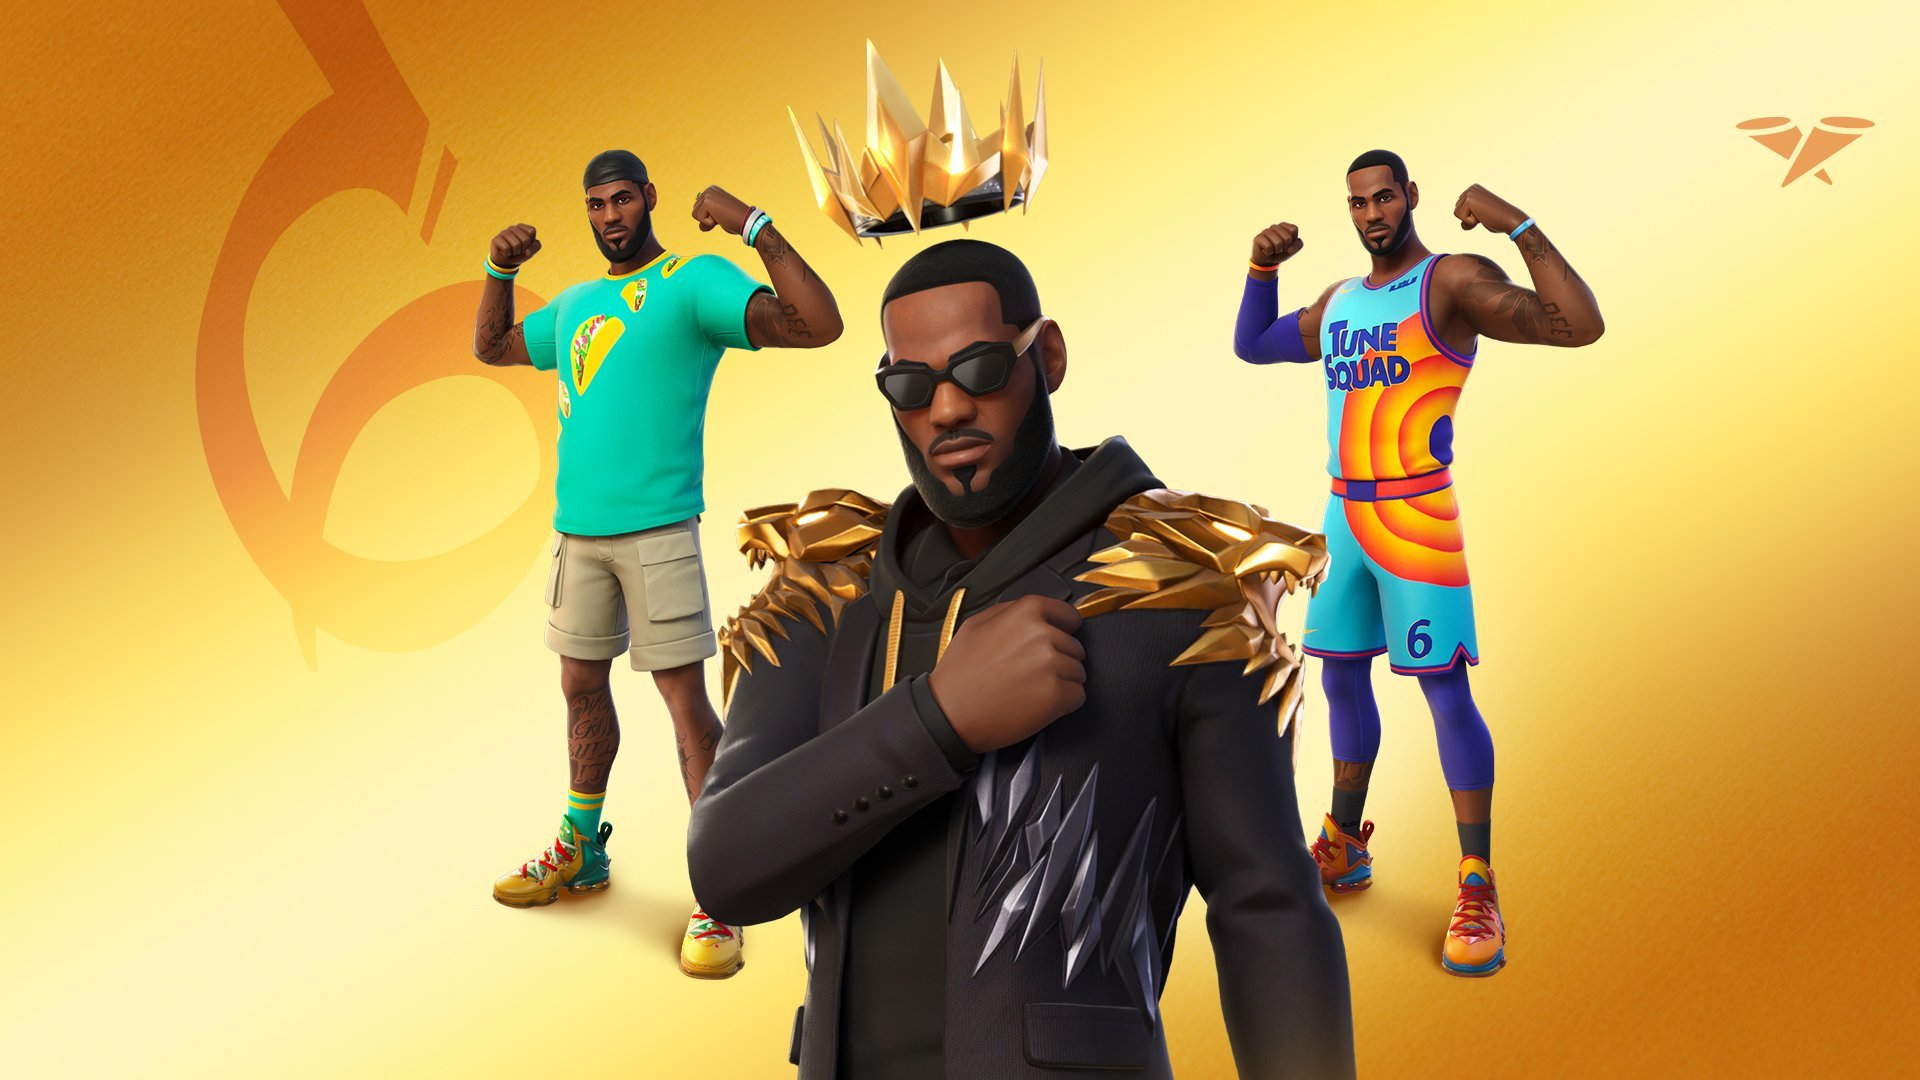 Three LeBron James Fortnite Skin designs. One in a Tune Squad outfit, another wearing a casual look and another with a gold crown.